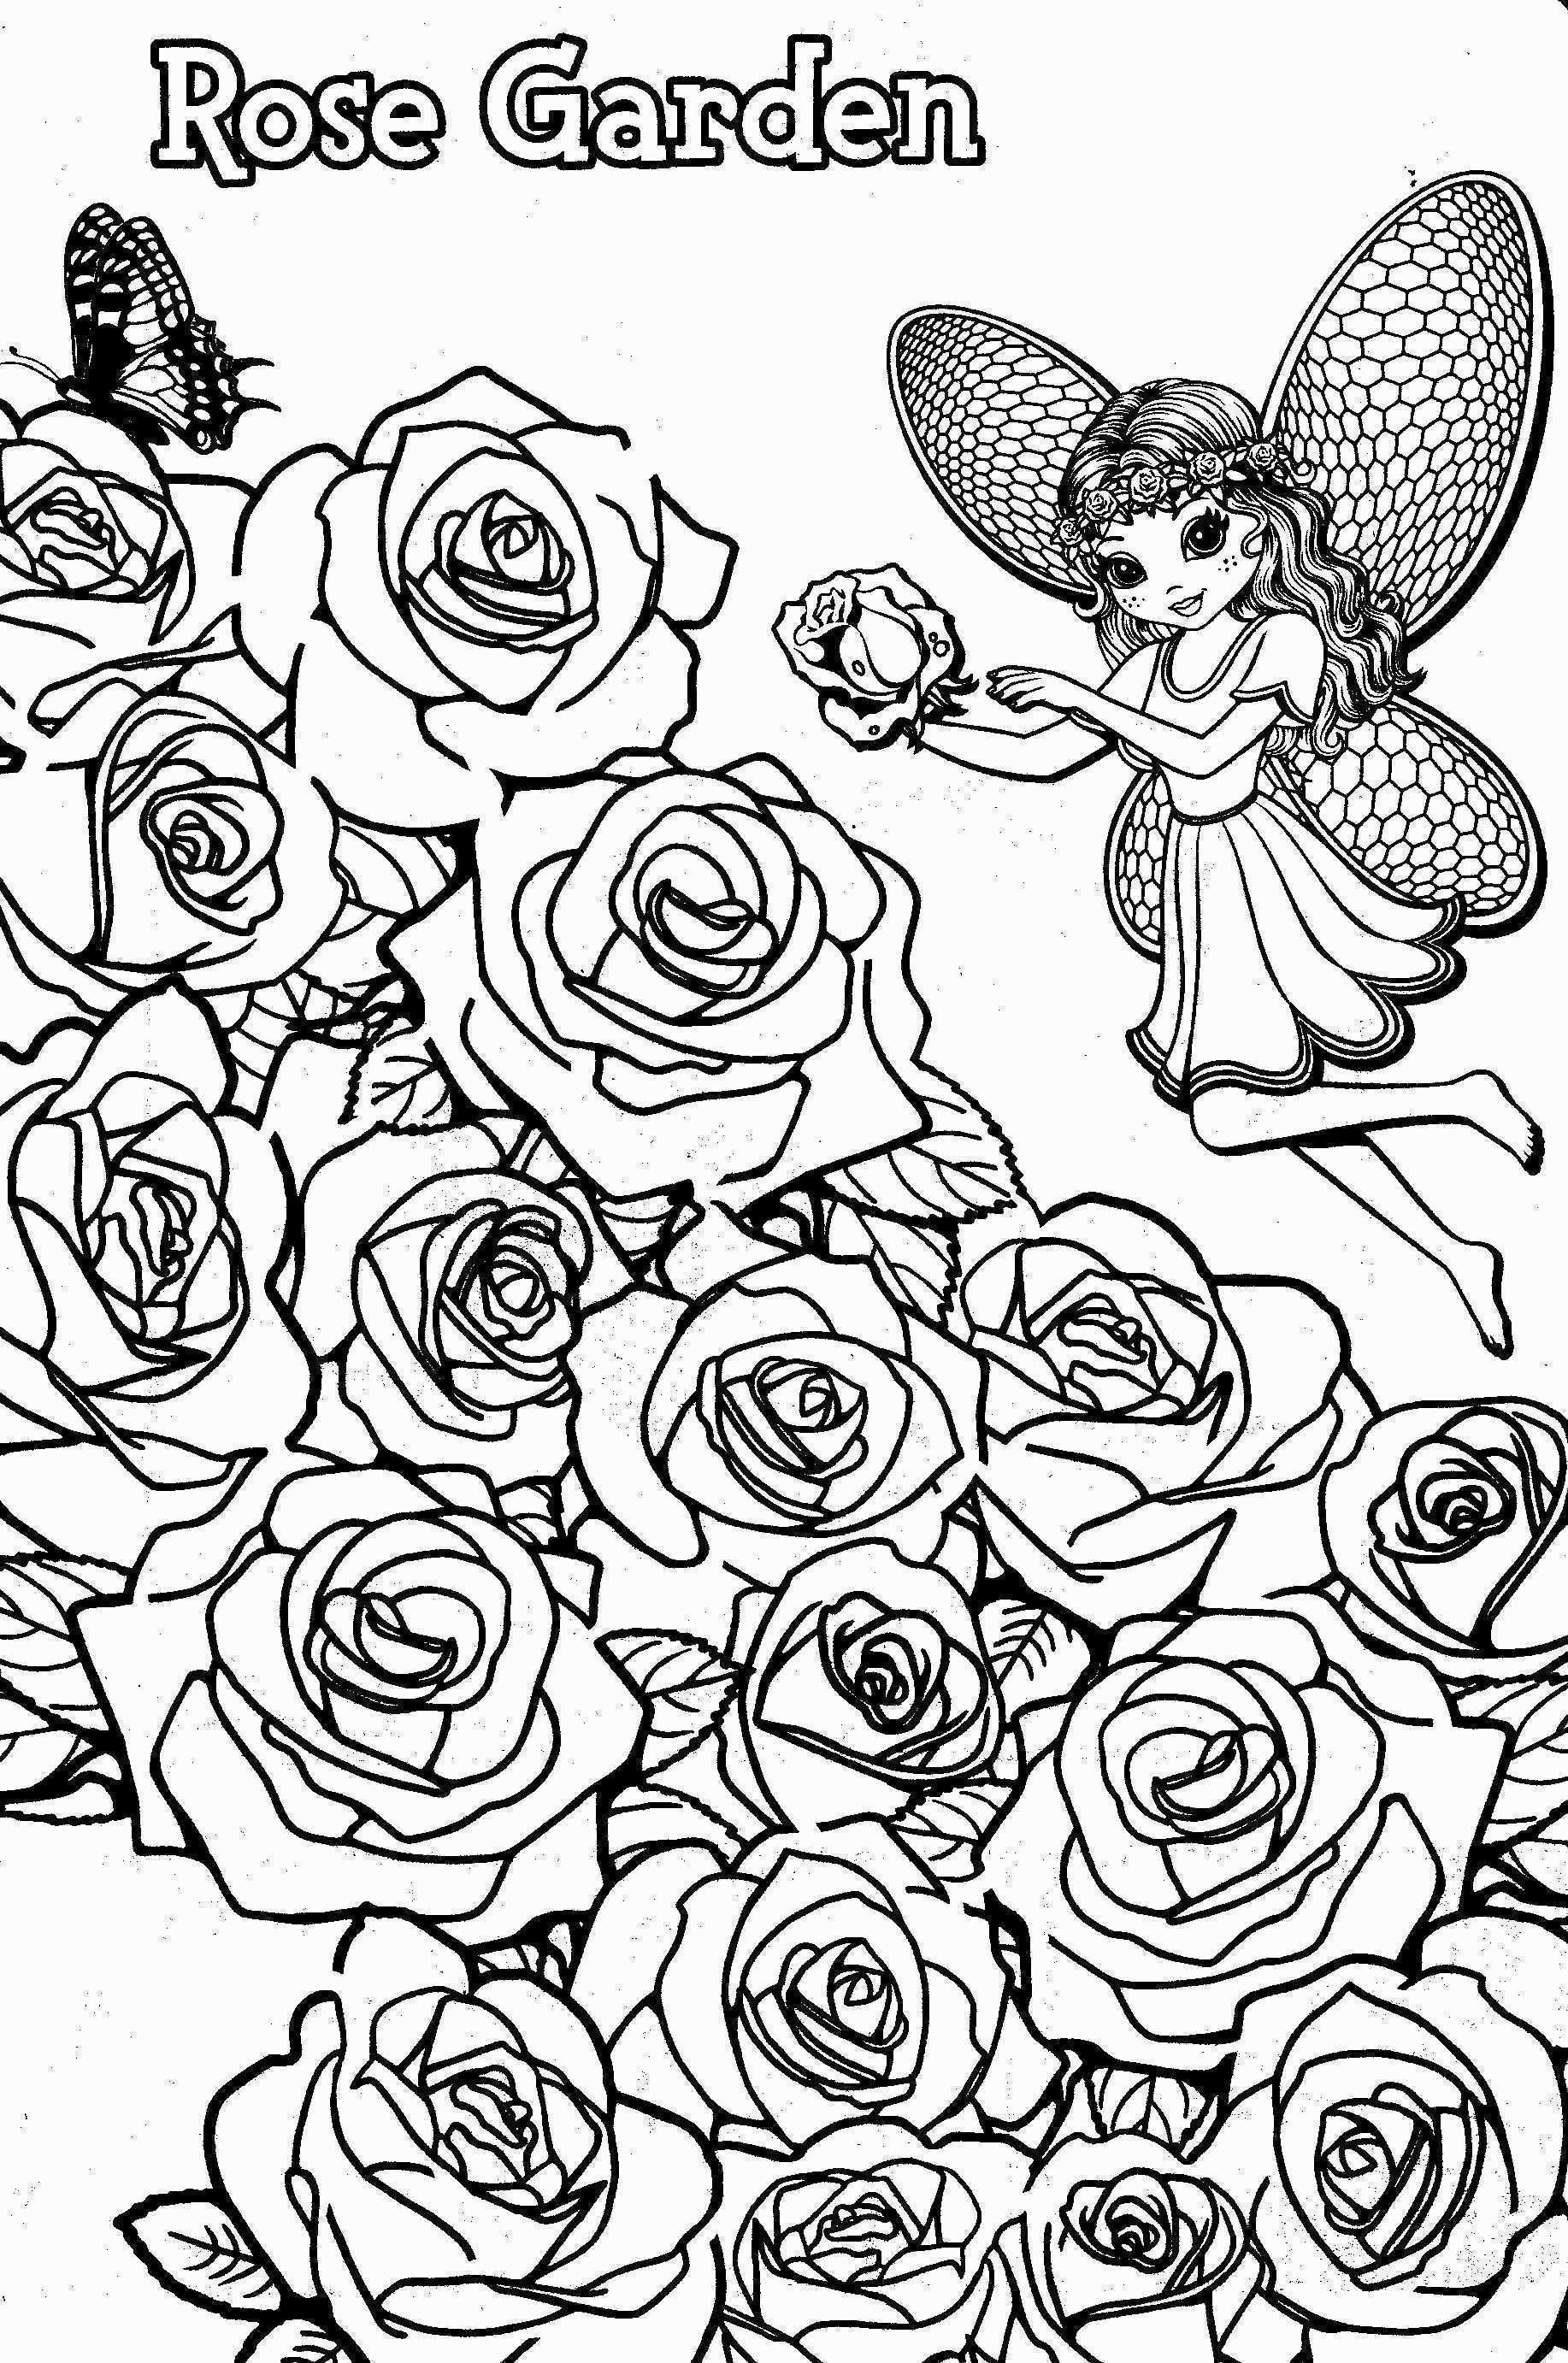 artificial flowers in black vase of best garden flowers fresh rose coloring books fresh home coloring within best garden flowers fresh rose coloring books fresh home coloring pages best colo